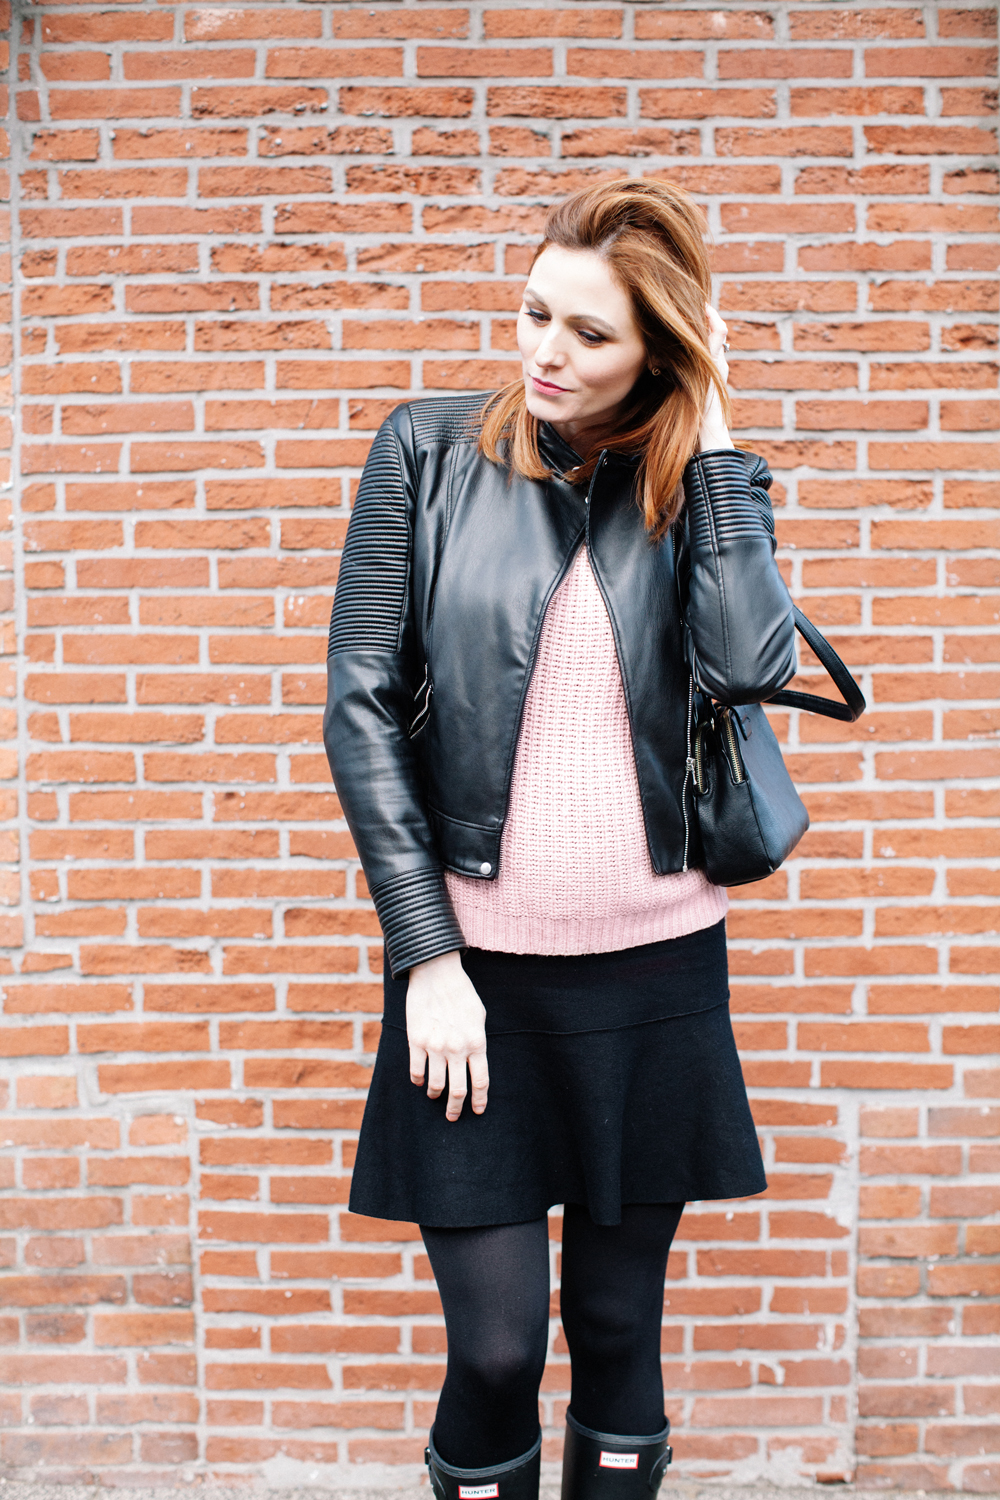 Black leather jacket and light pink sweater